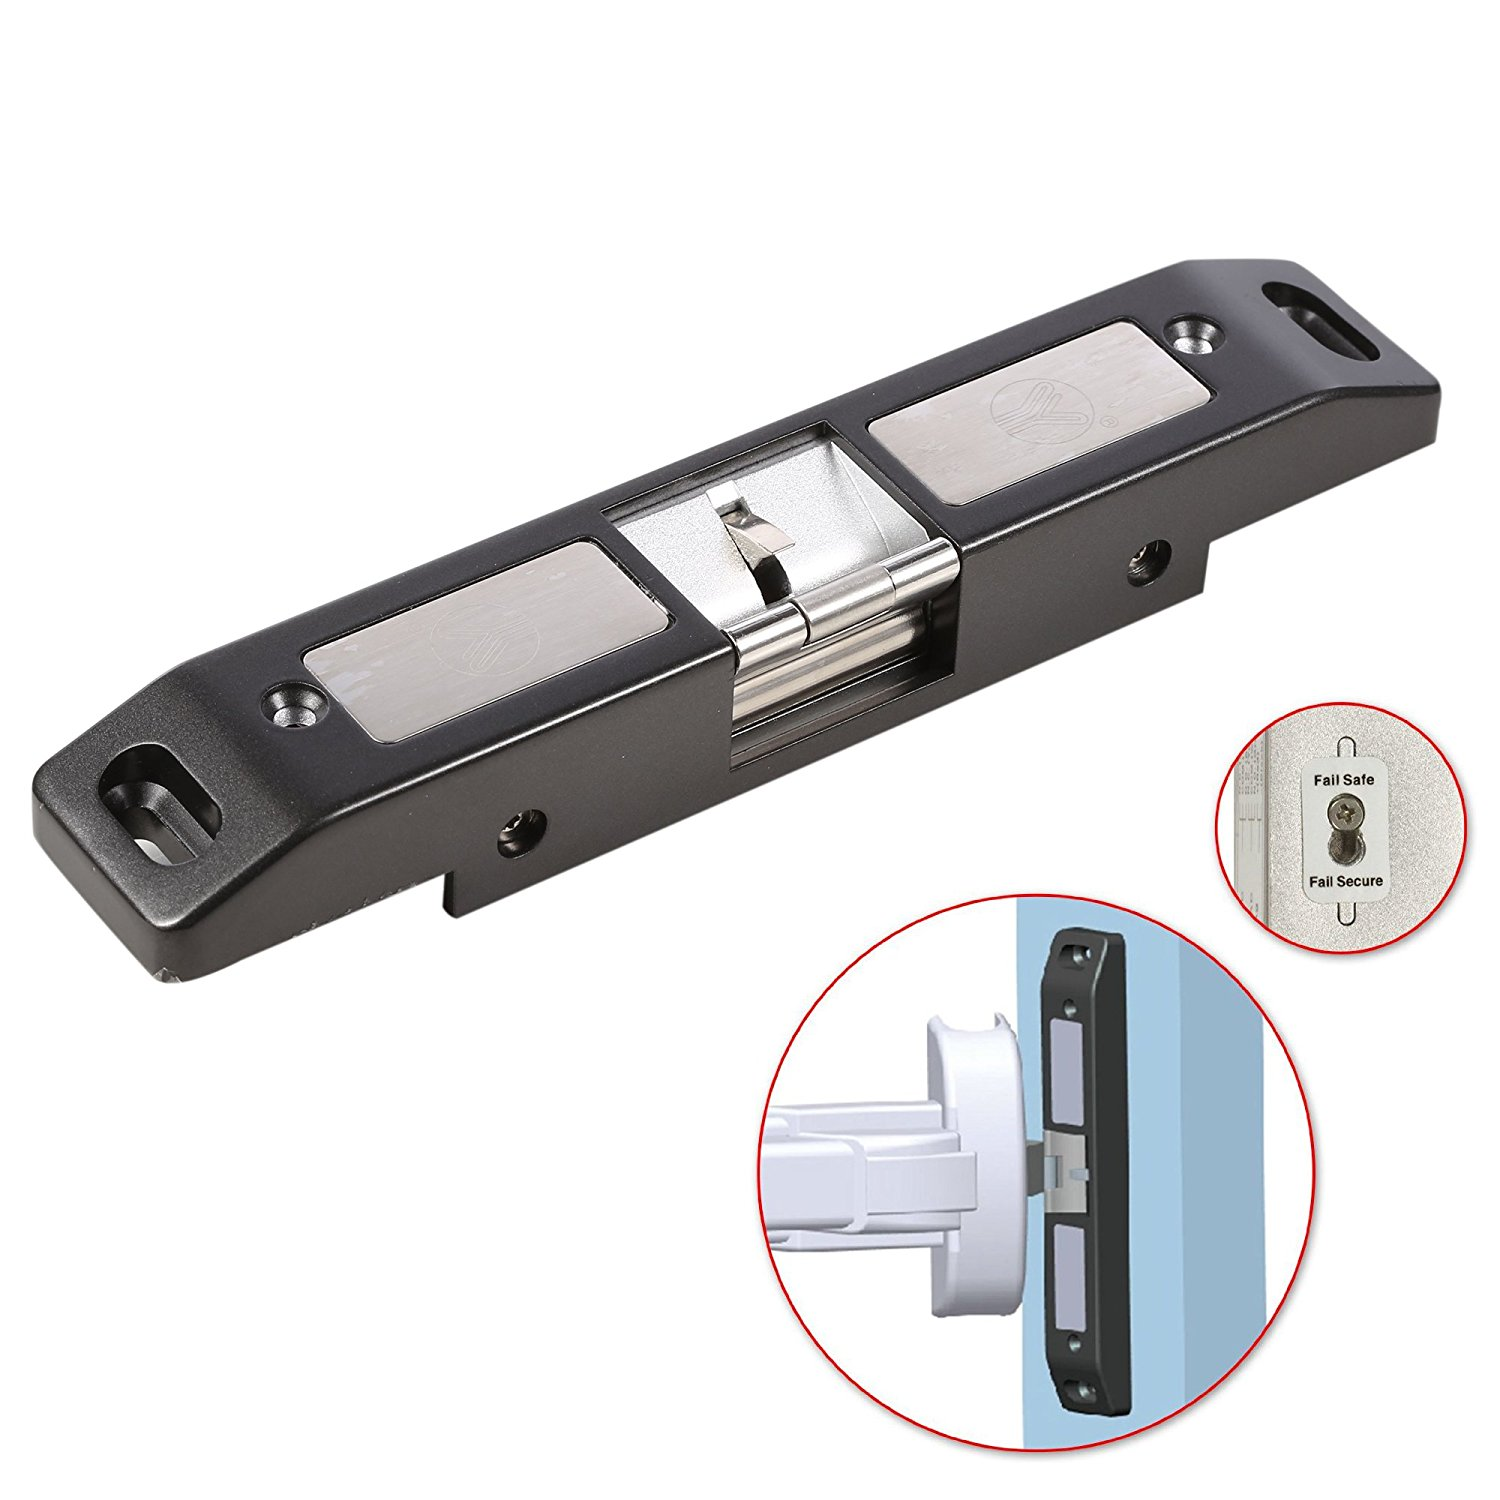 OBO HANDS Electric Strike Lock For Push Panic Bar Exit Device Emergency Door Fail safe/Fail Secure Mode Exchangeable Lock obo hands ansi standard heavy duty electric strike lock fail secure no mode for wooden metal pvc door